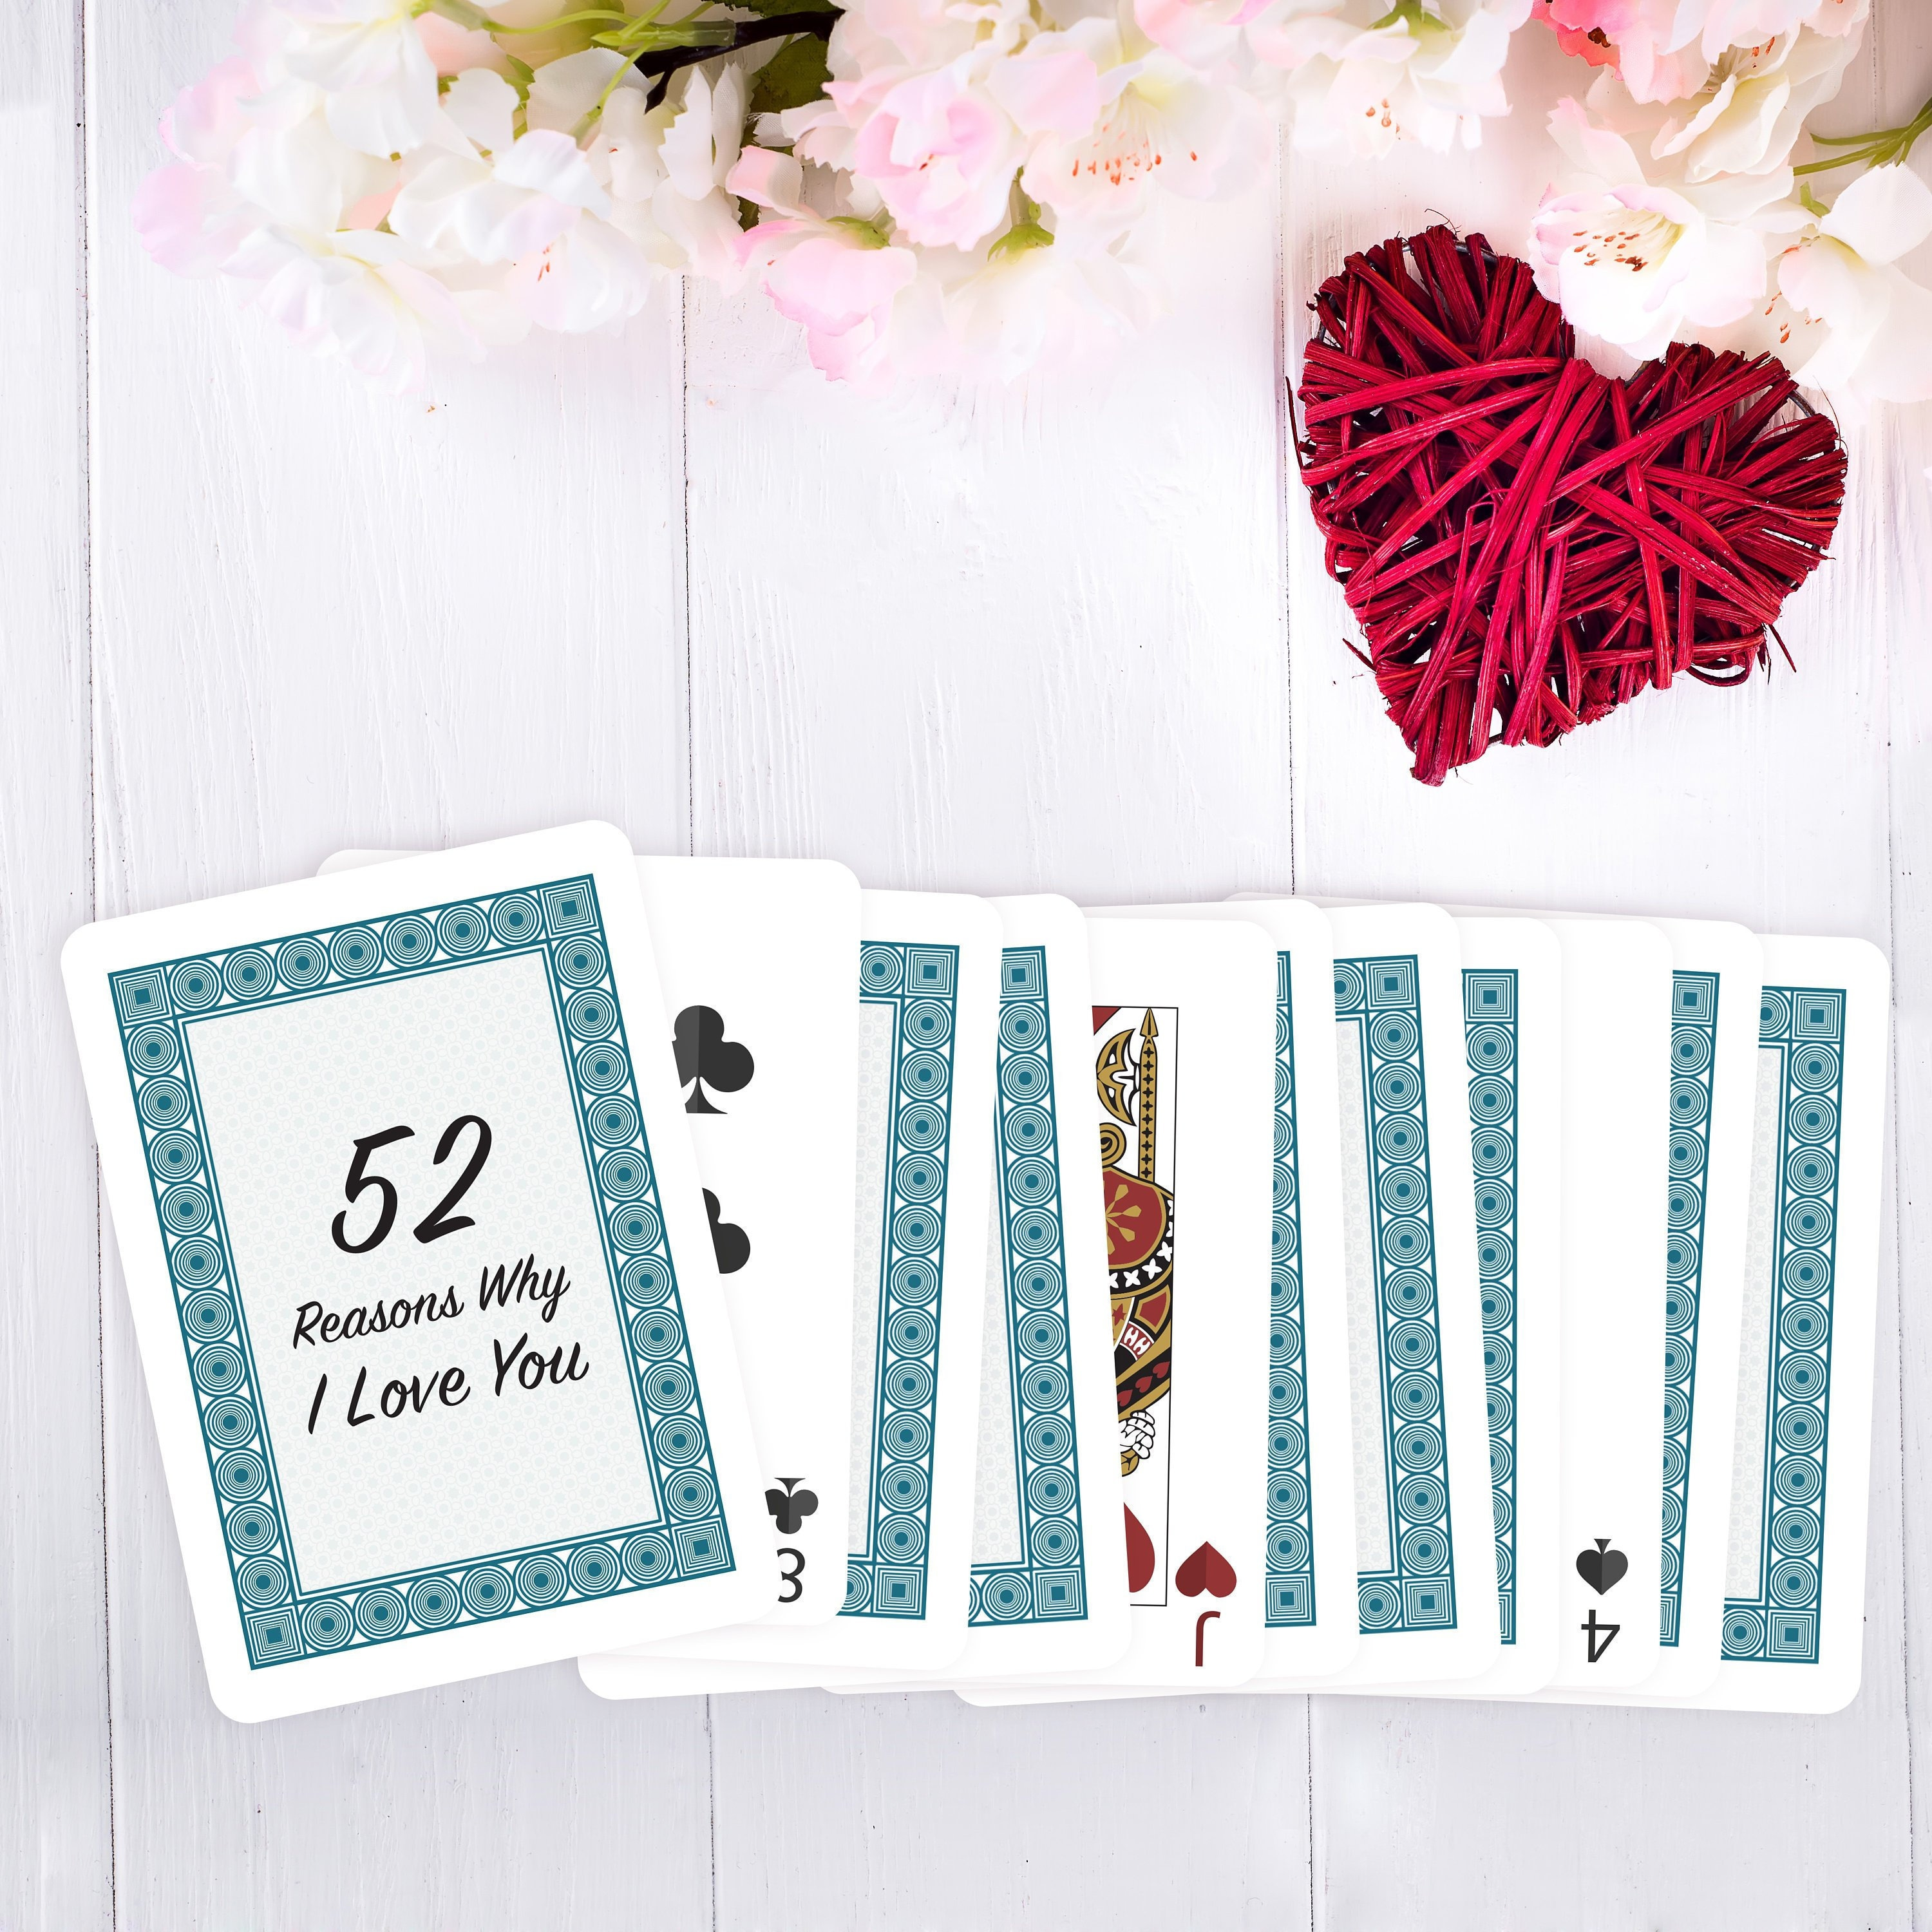 21 Reasons Why I/We Love You Deck of Cards, Blank Cards, Playing Cards, DIY  Personalized Gift Throughout 52 Things I Love About You Deck Of Cards Template